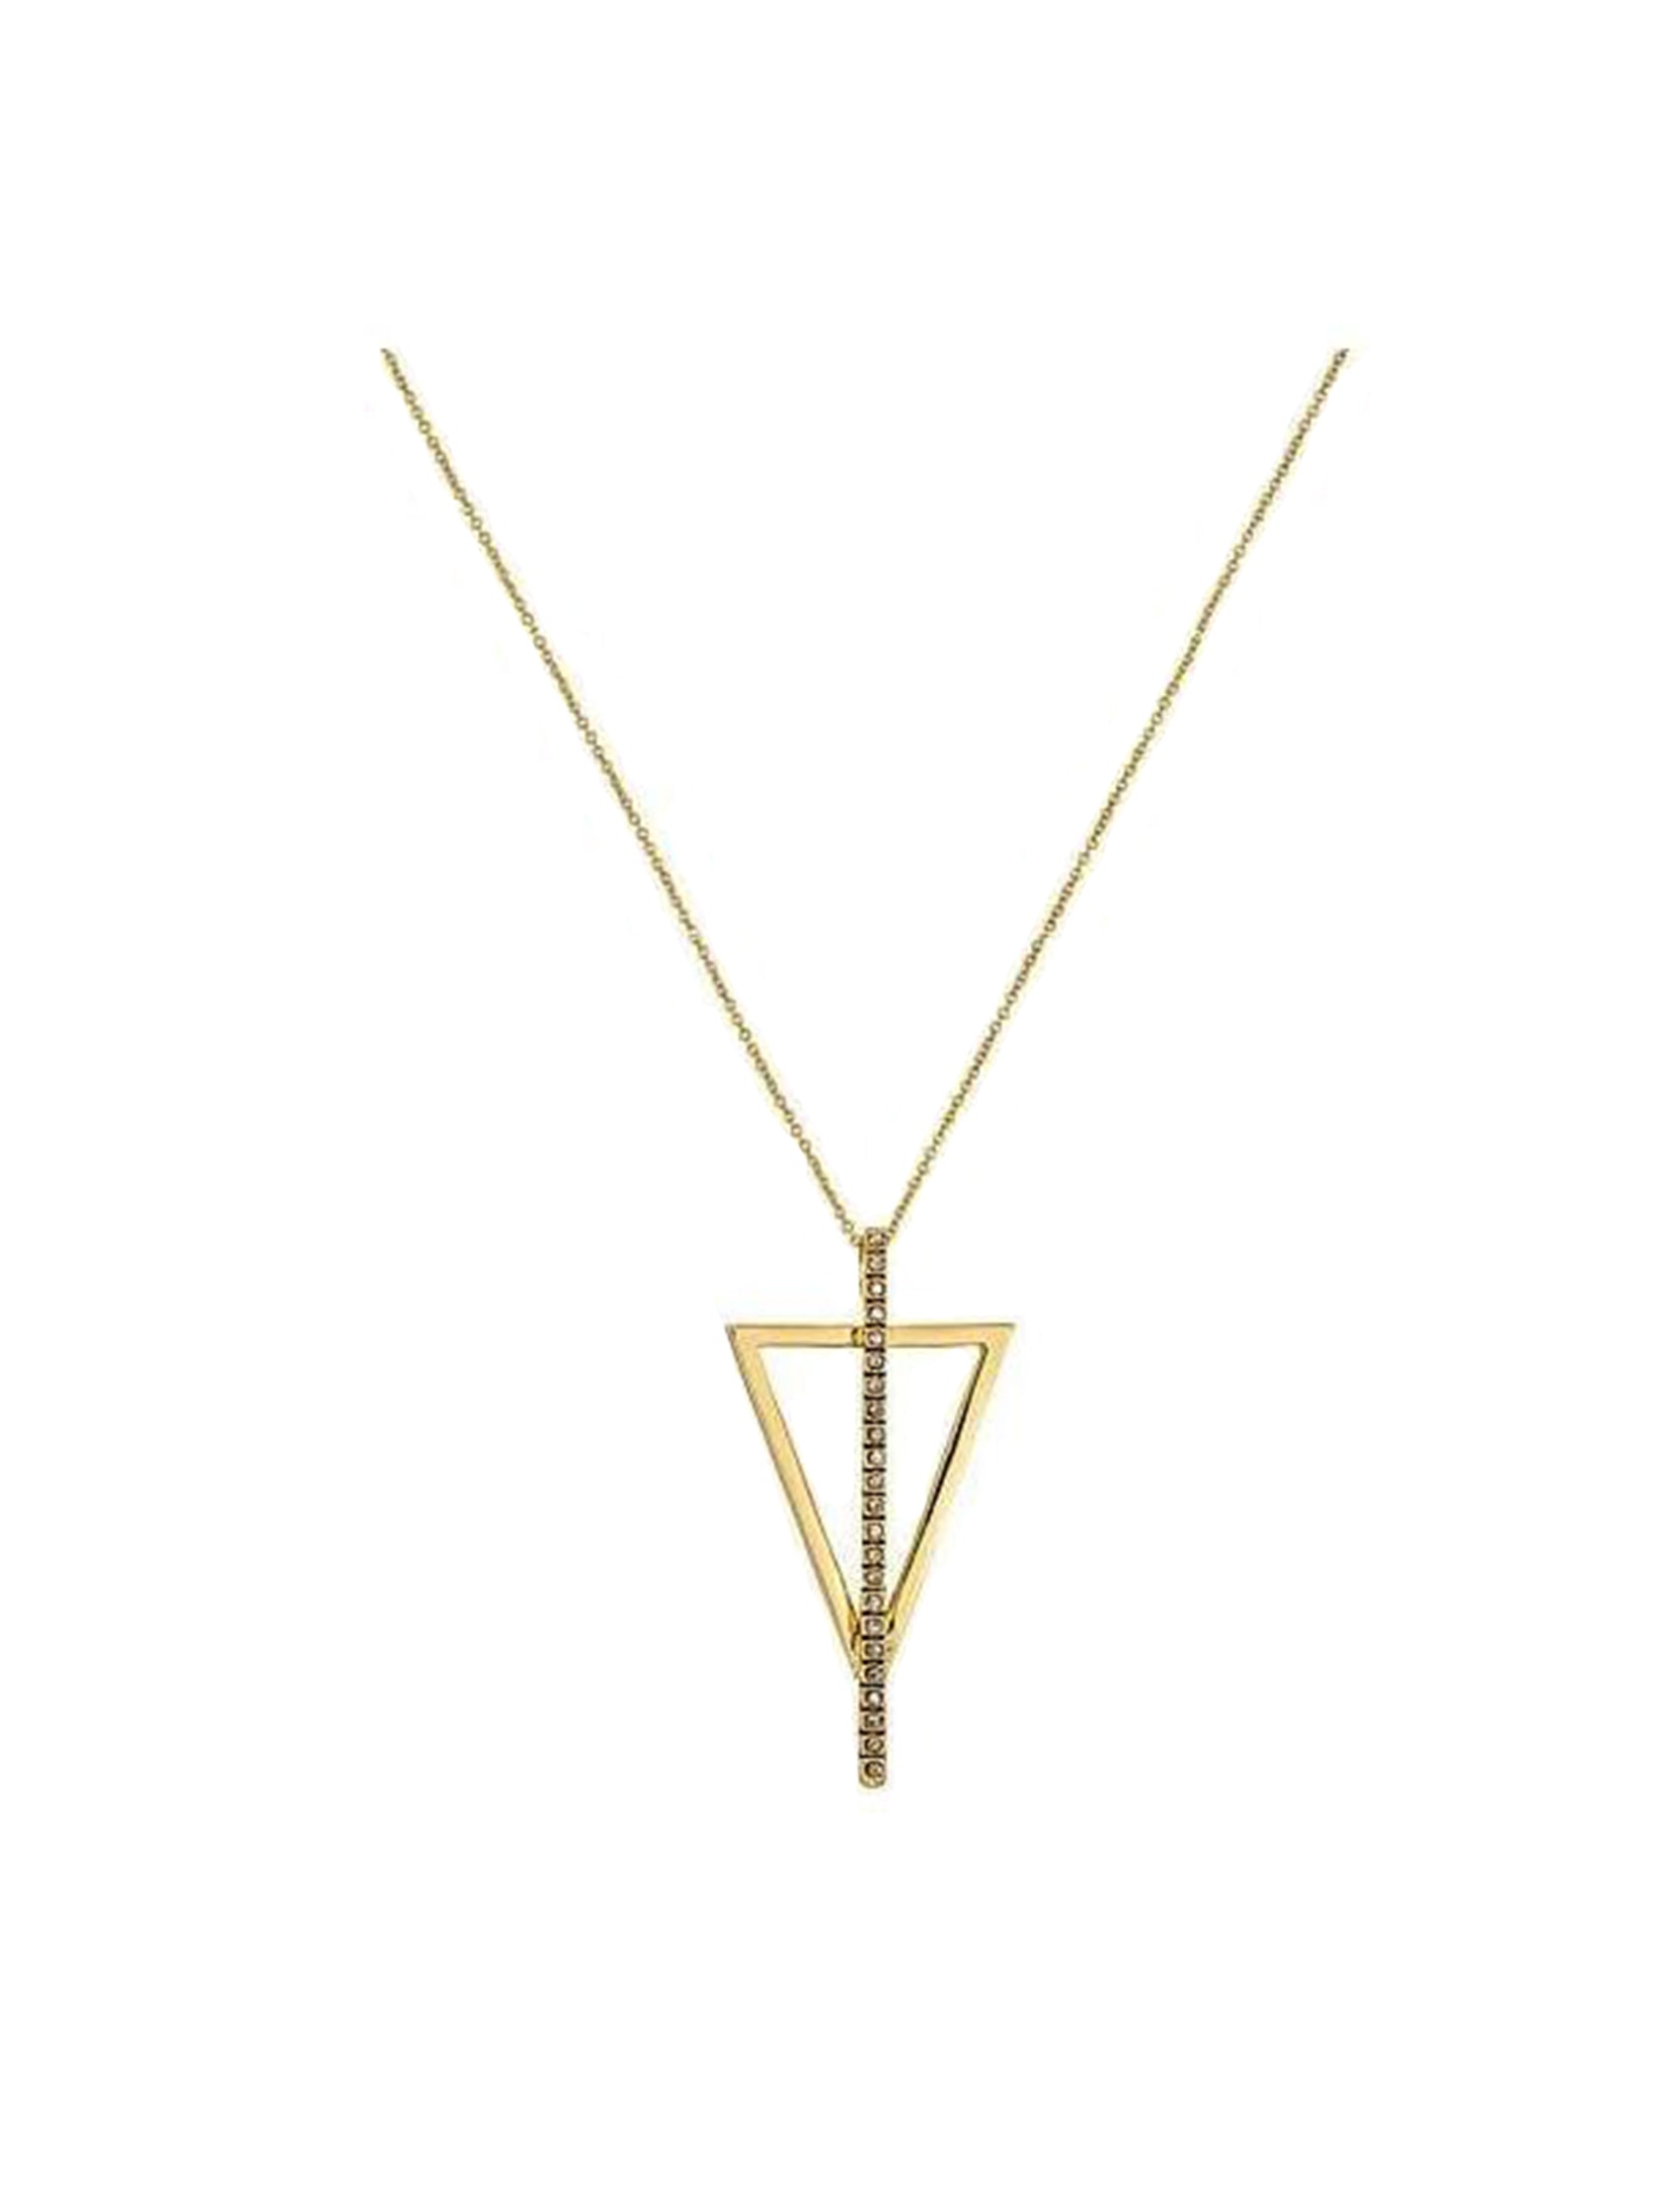 Women outfit in a necklace rental from House of Harlow 1960 called Eden Pendant Necklace